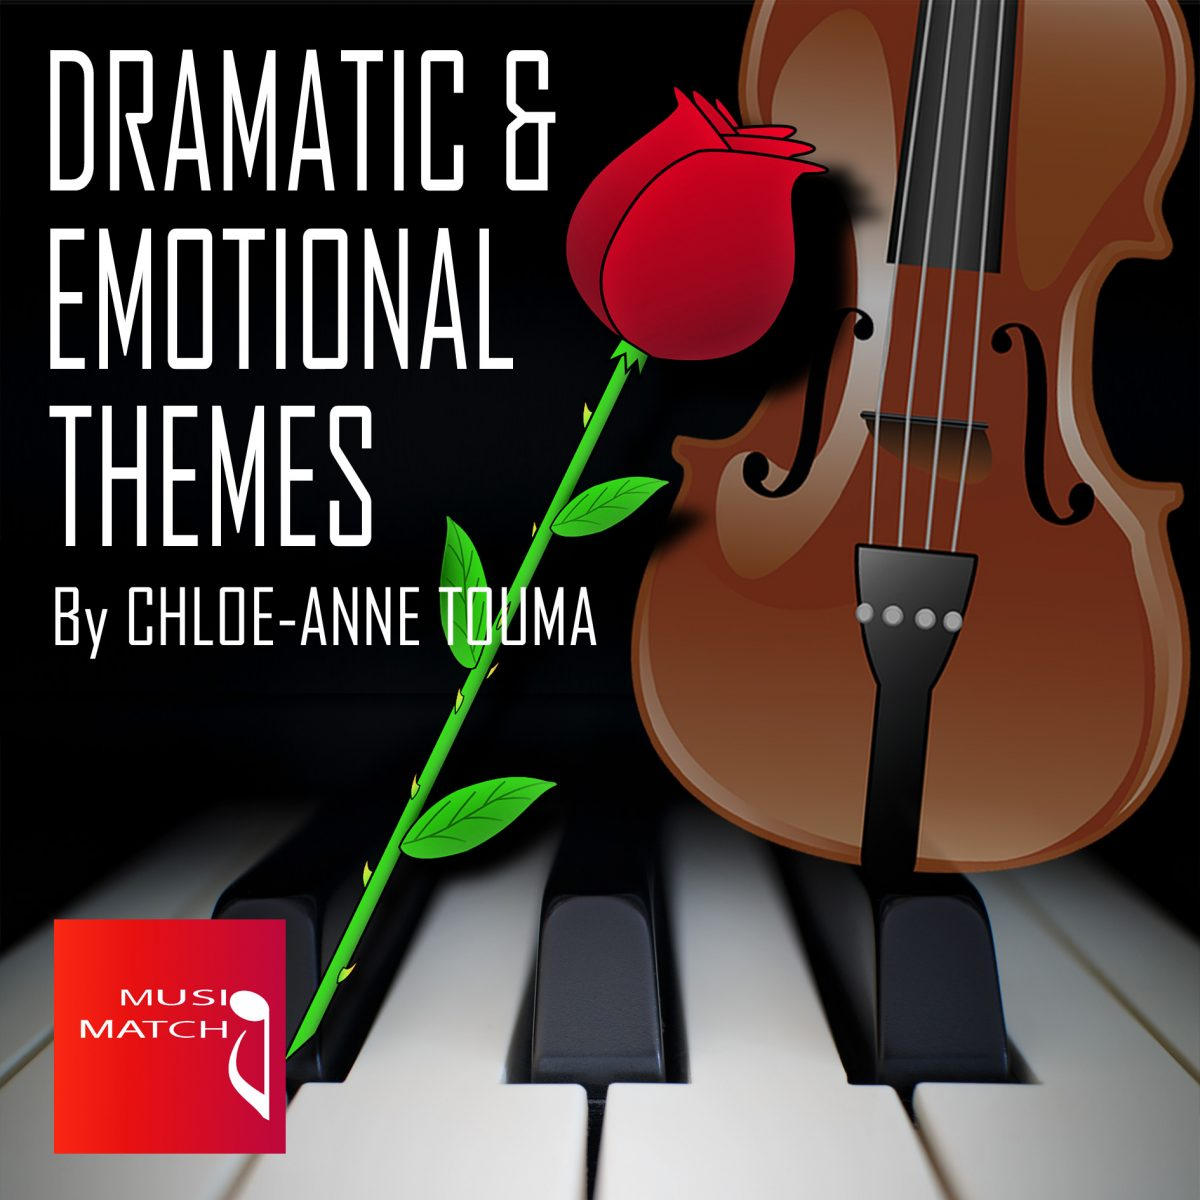 Dramatic & Emotional Themes Album